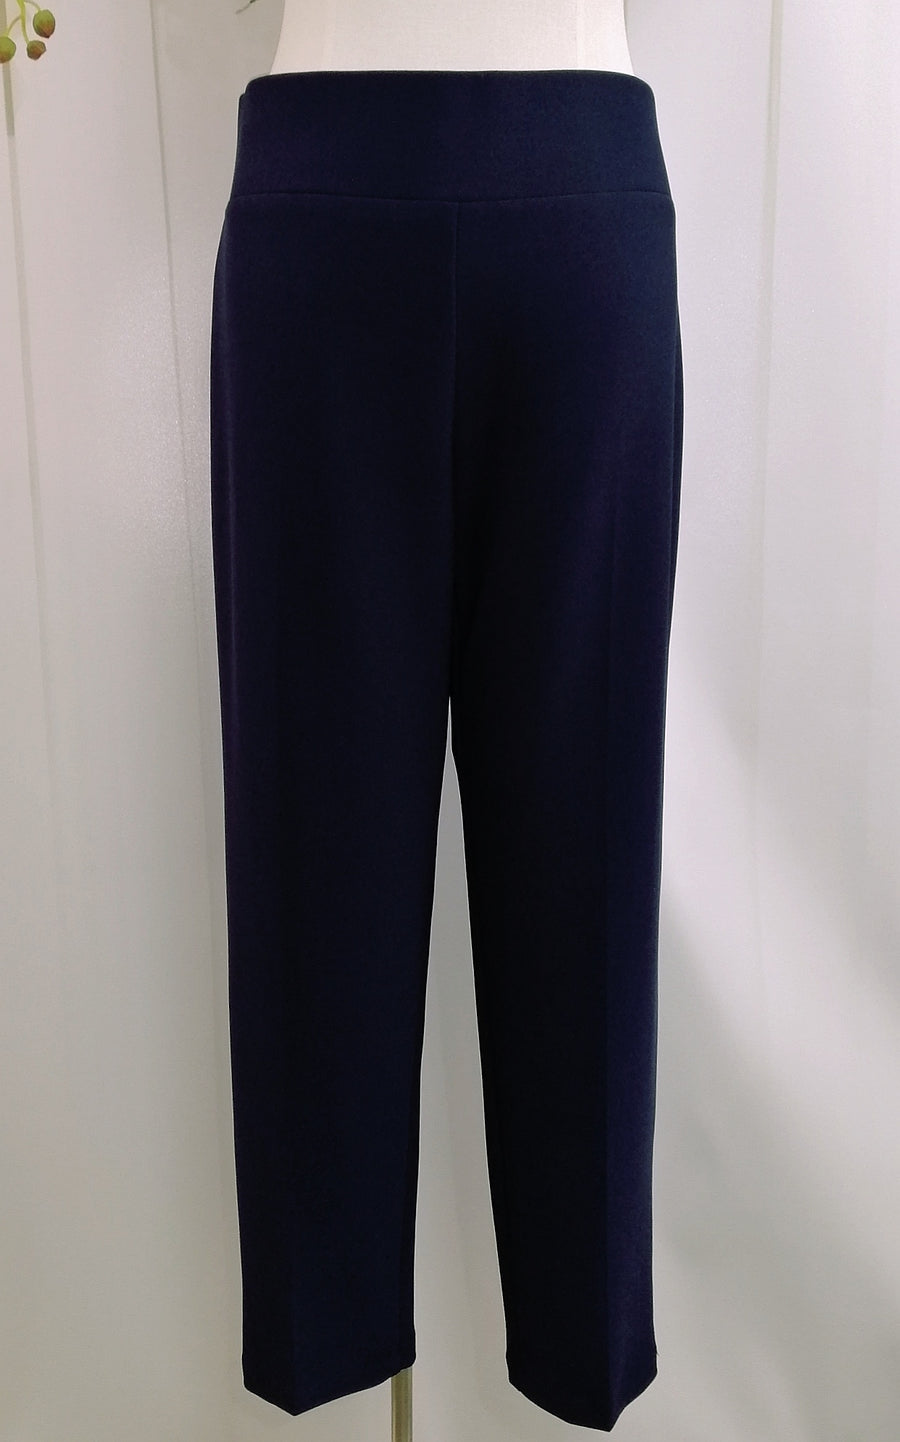 Frank Lyman Knit Pant - Navy (082) - Fashion Focus